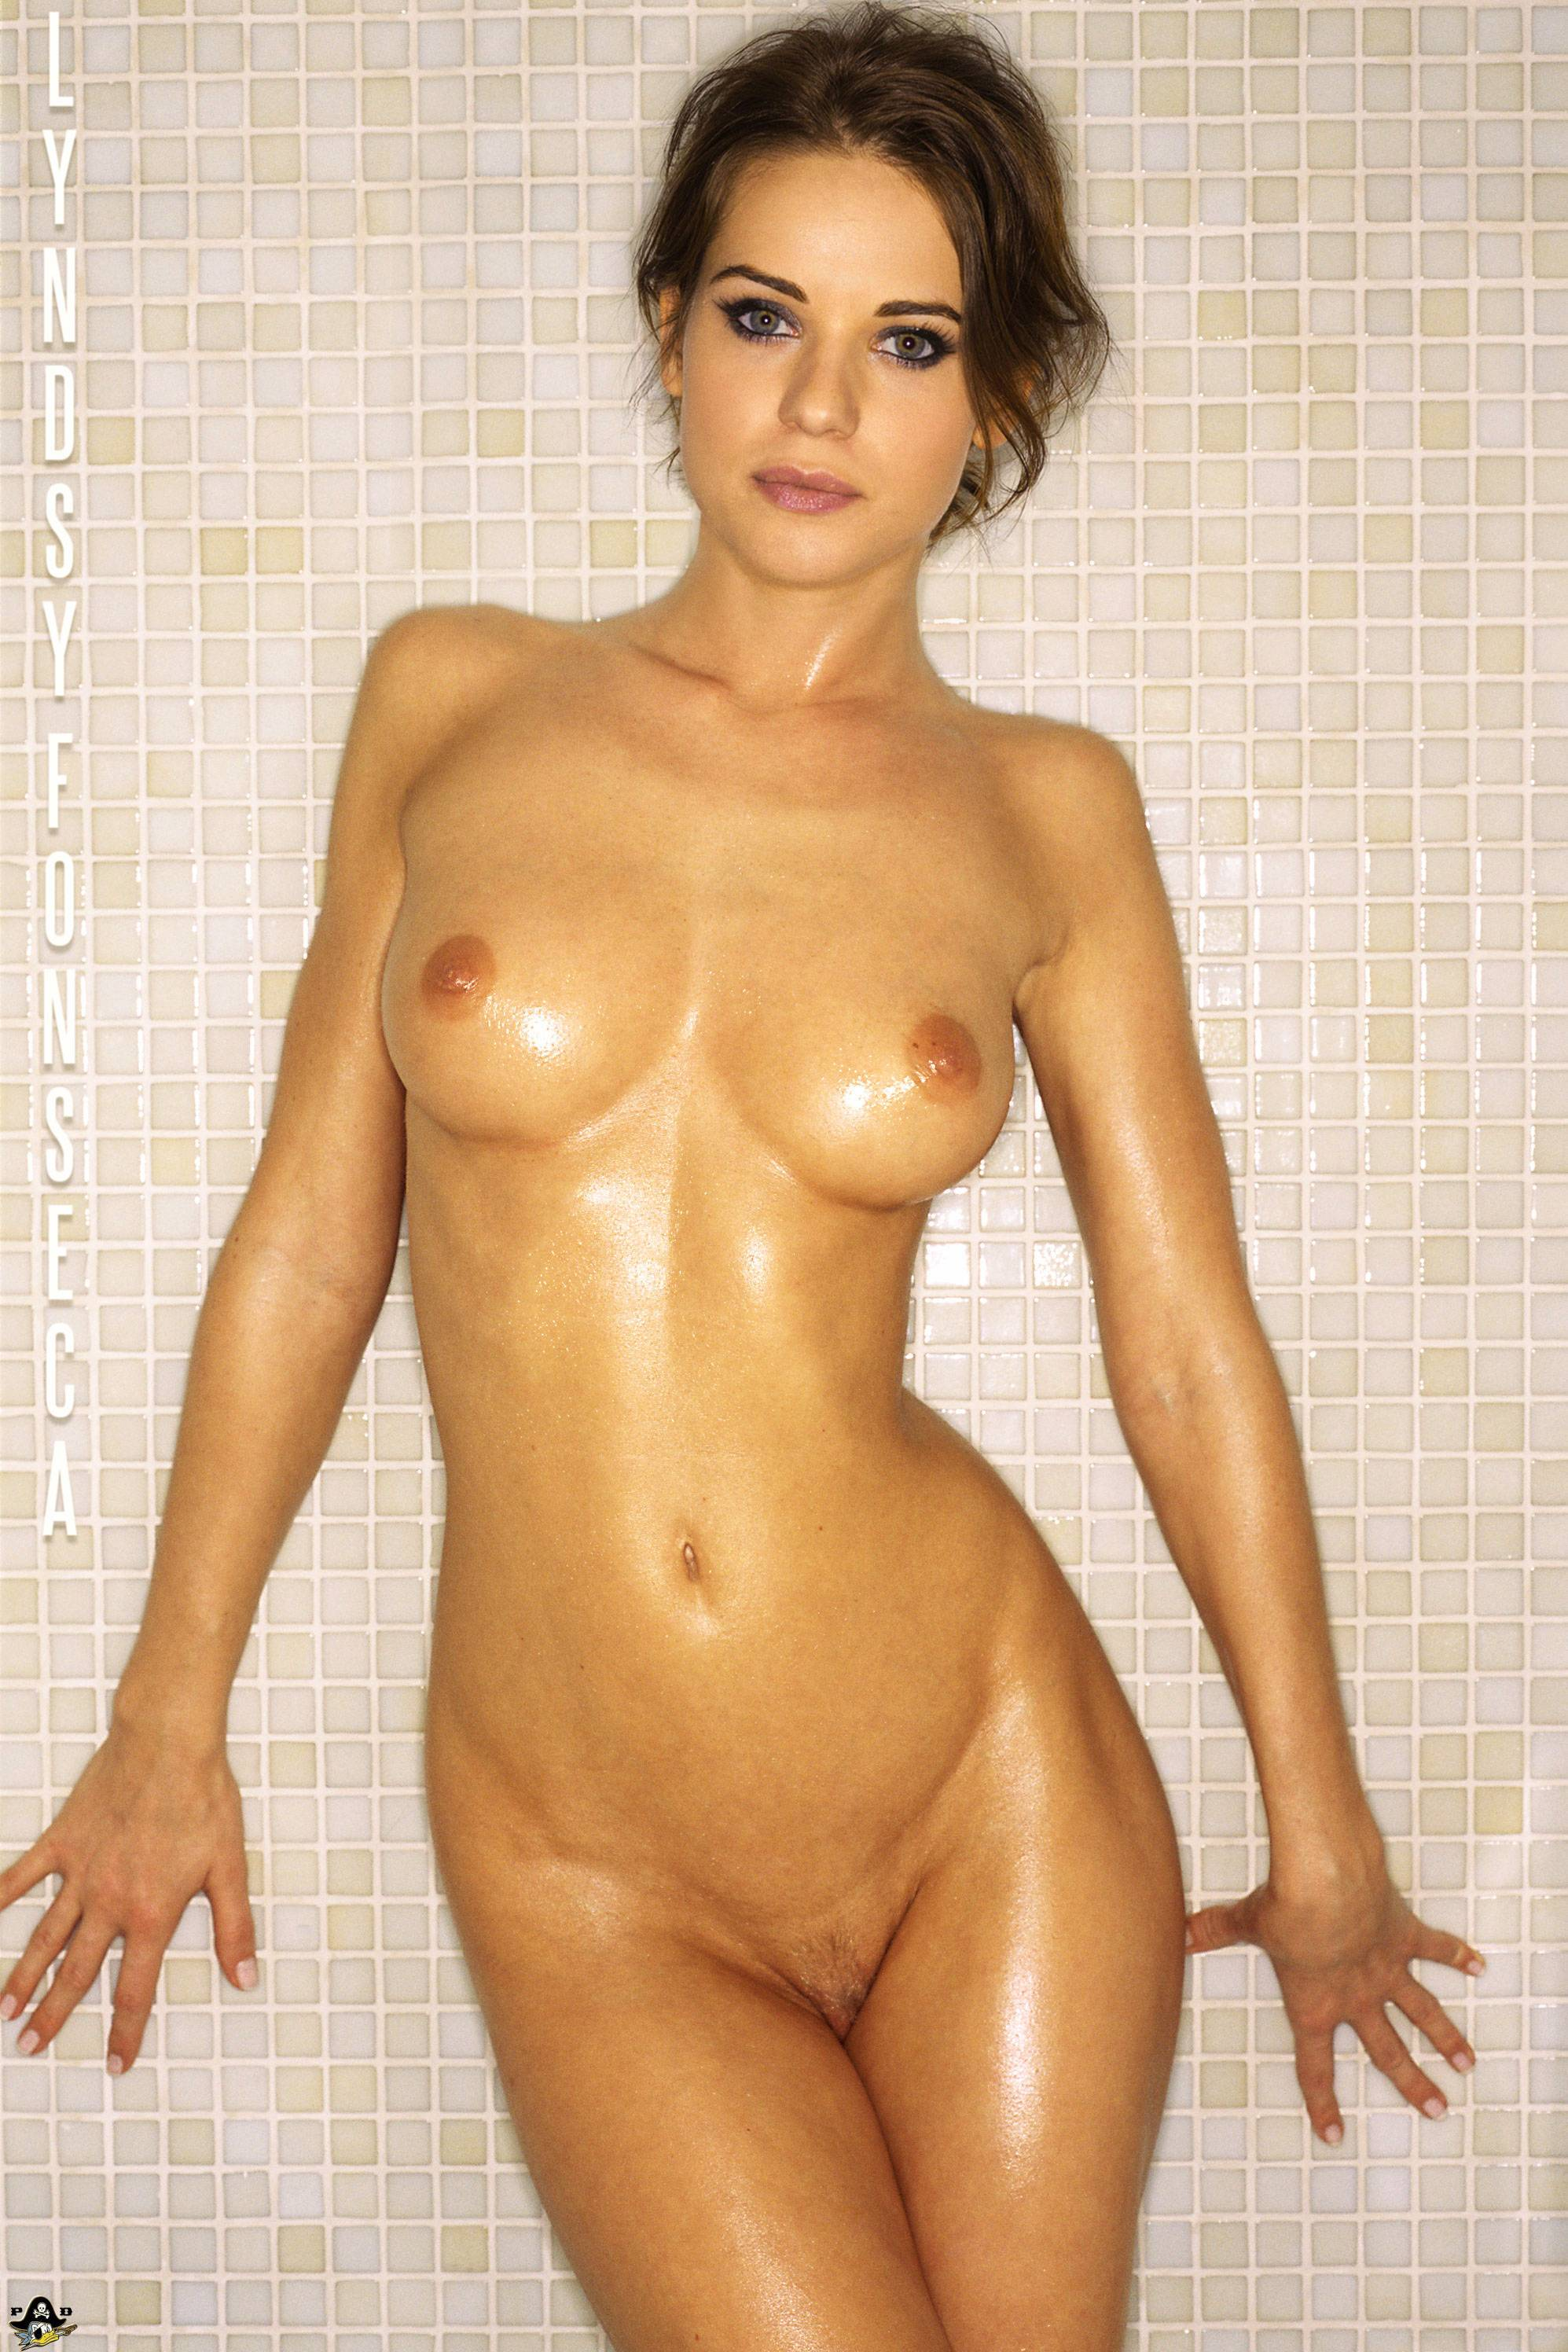 hot woman in bathtub nude